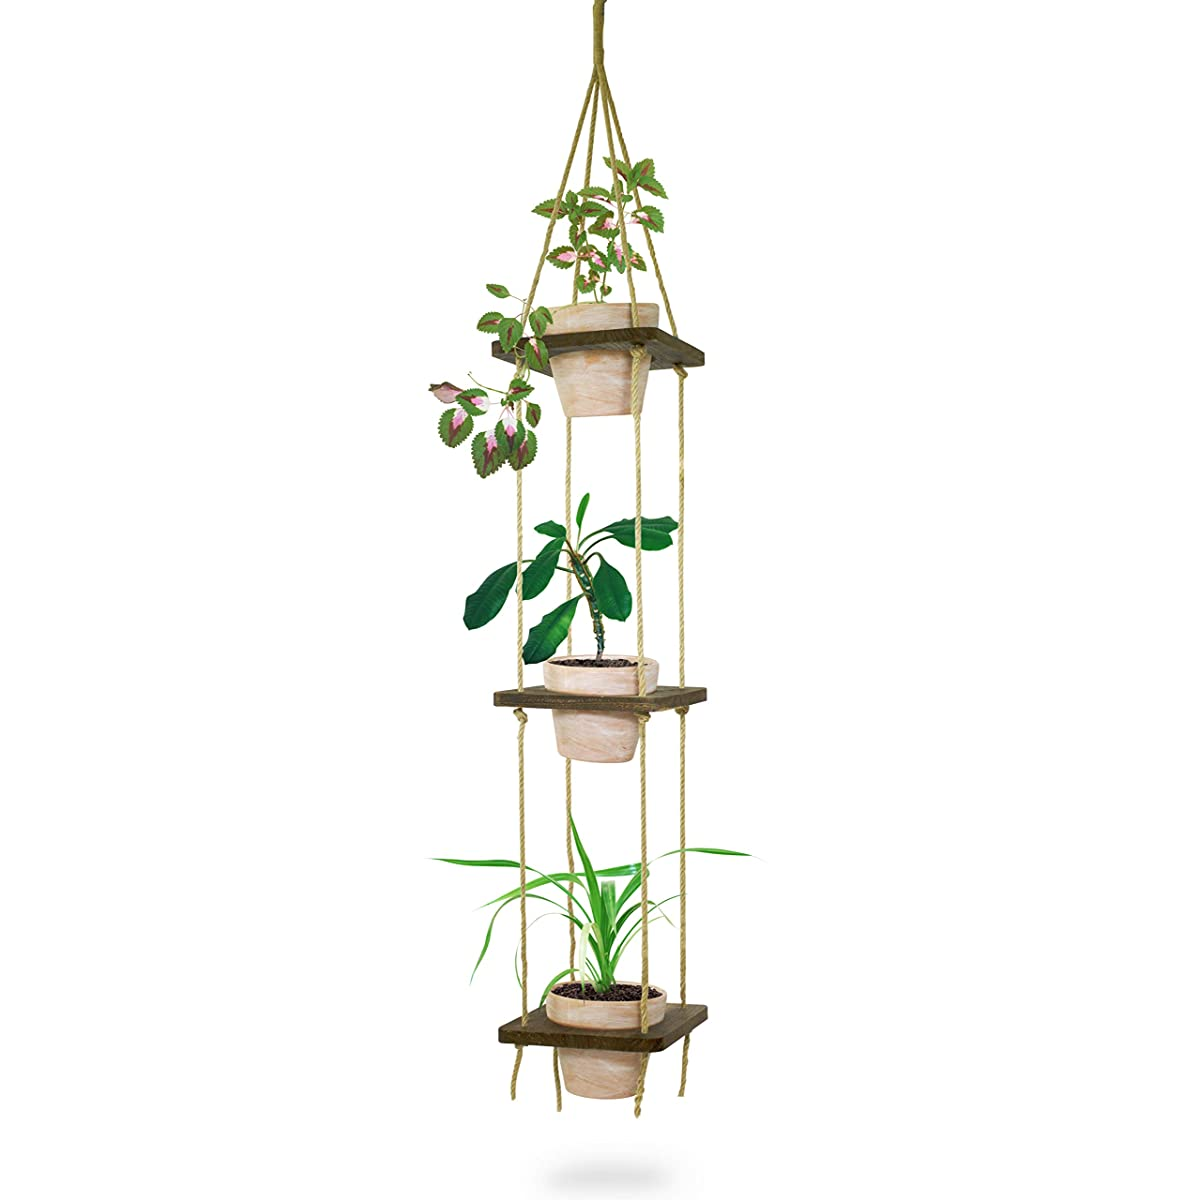 23 Bees | Macrame Hanging Planter with Terra Cotta Clay Pot | Antique Holder Shelf & Floating Shelves | Handcrafted Wood with Rope and Hanger (3 Terracotta Pots with Wooden Layers)